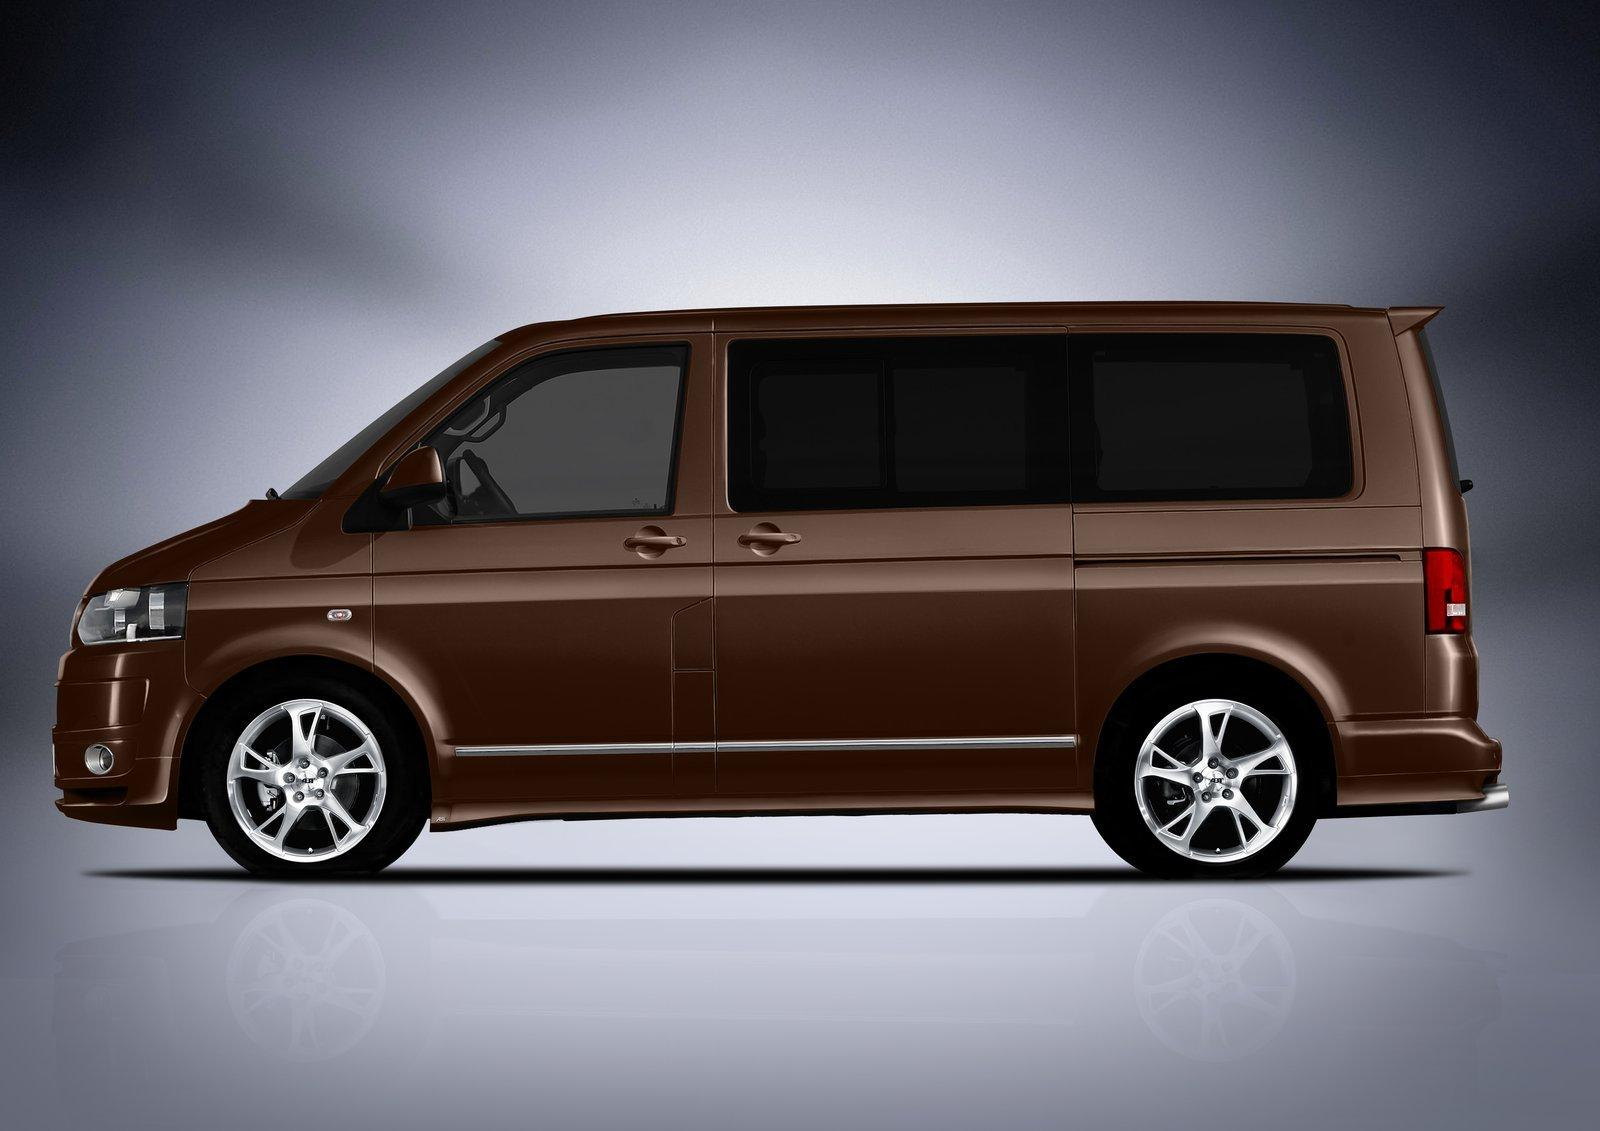 Volkswagen T5 By Abt Sportsline Car Tuning Styling Multivan - Medium